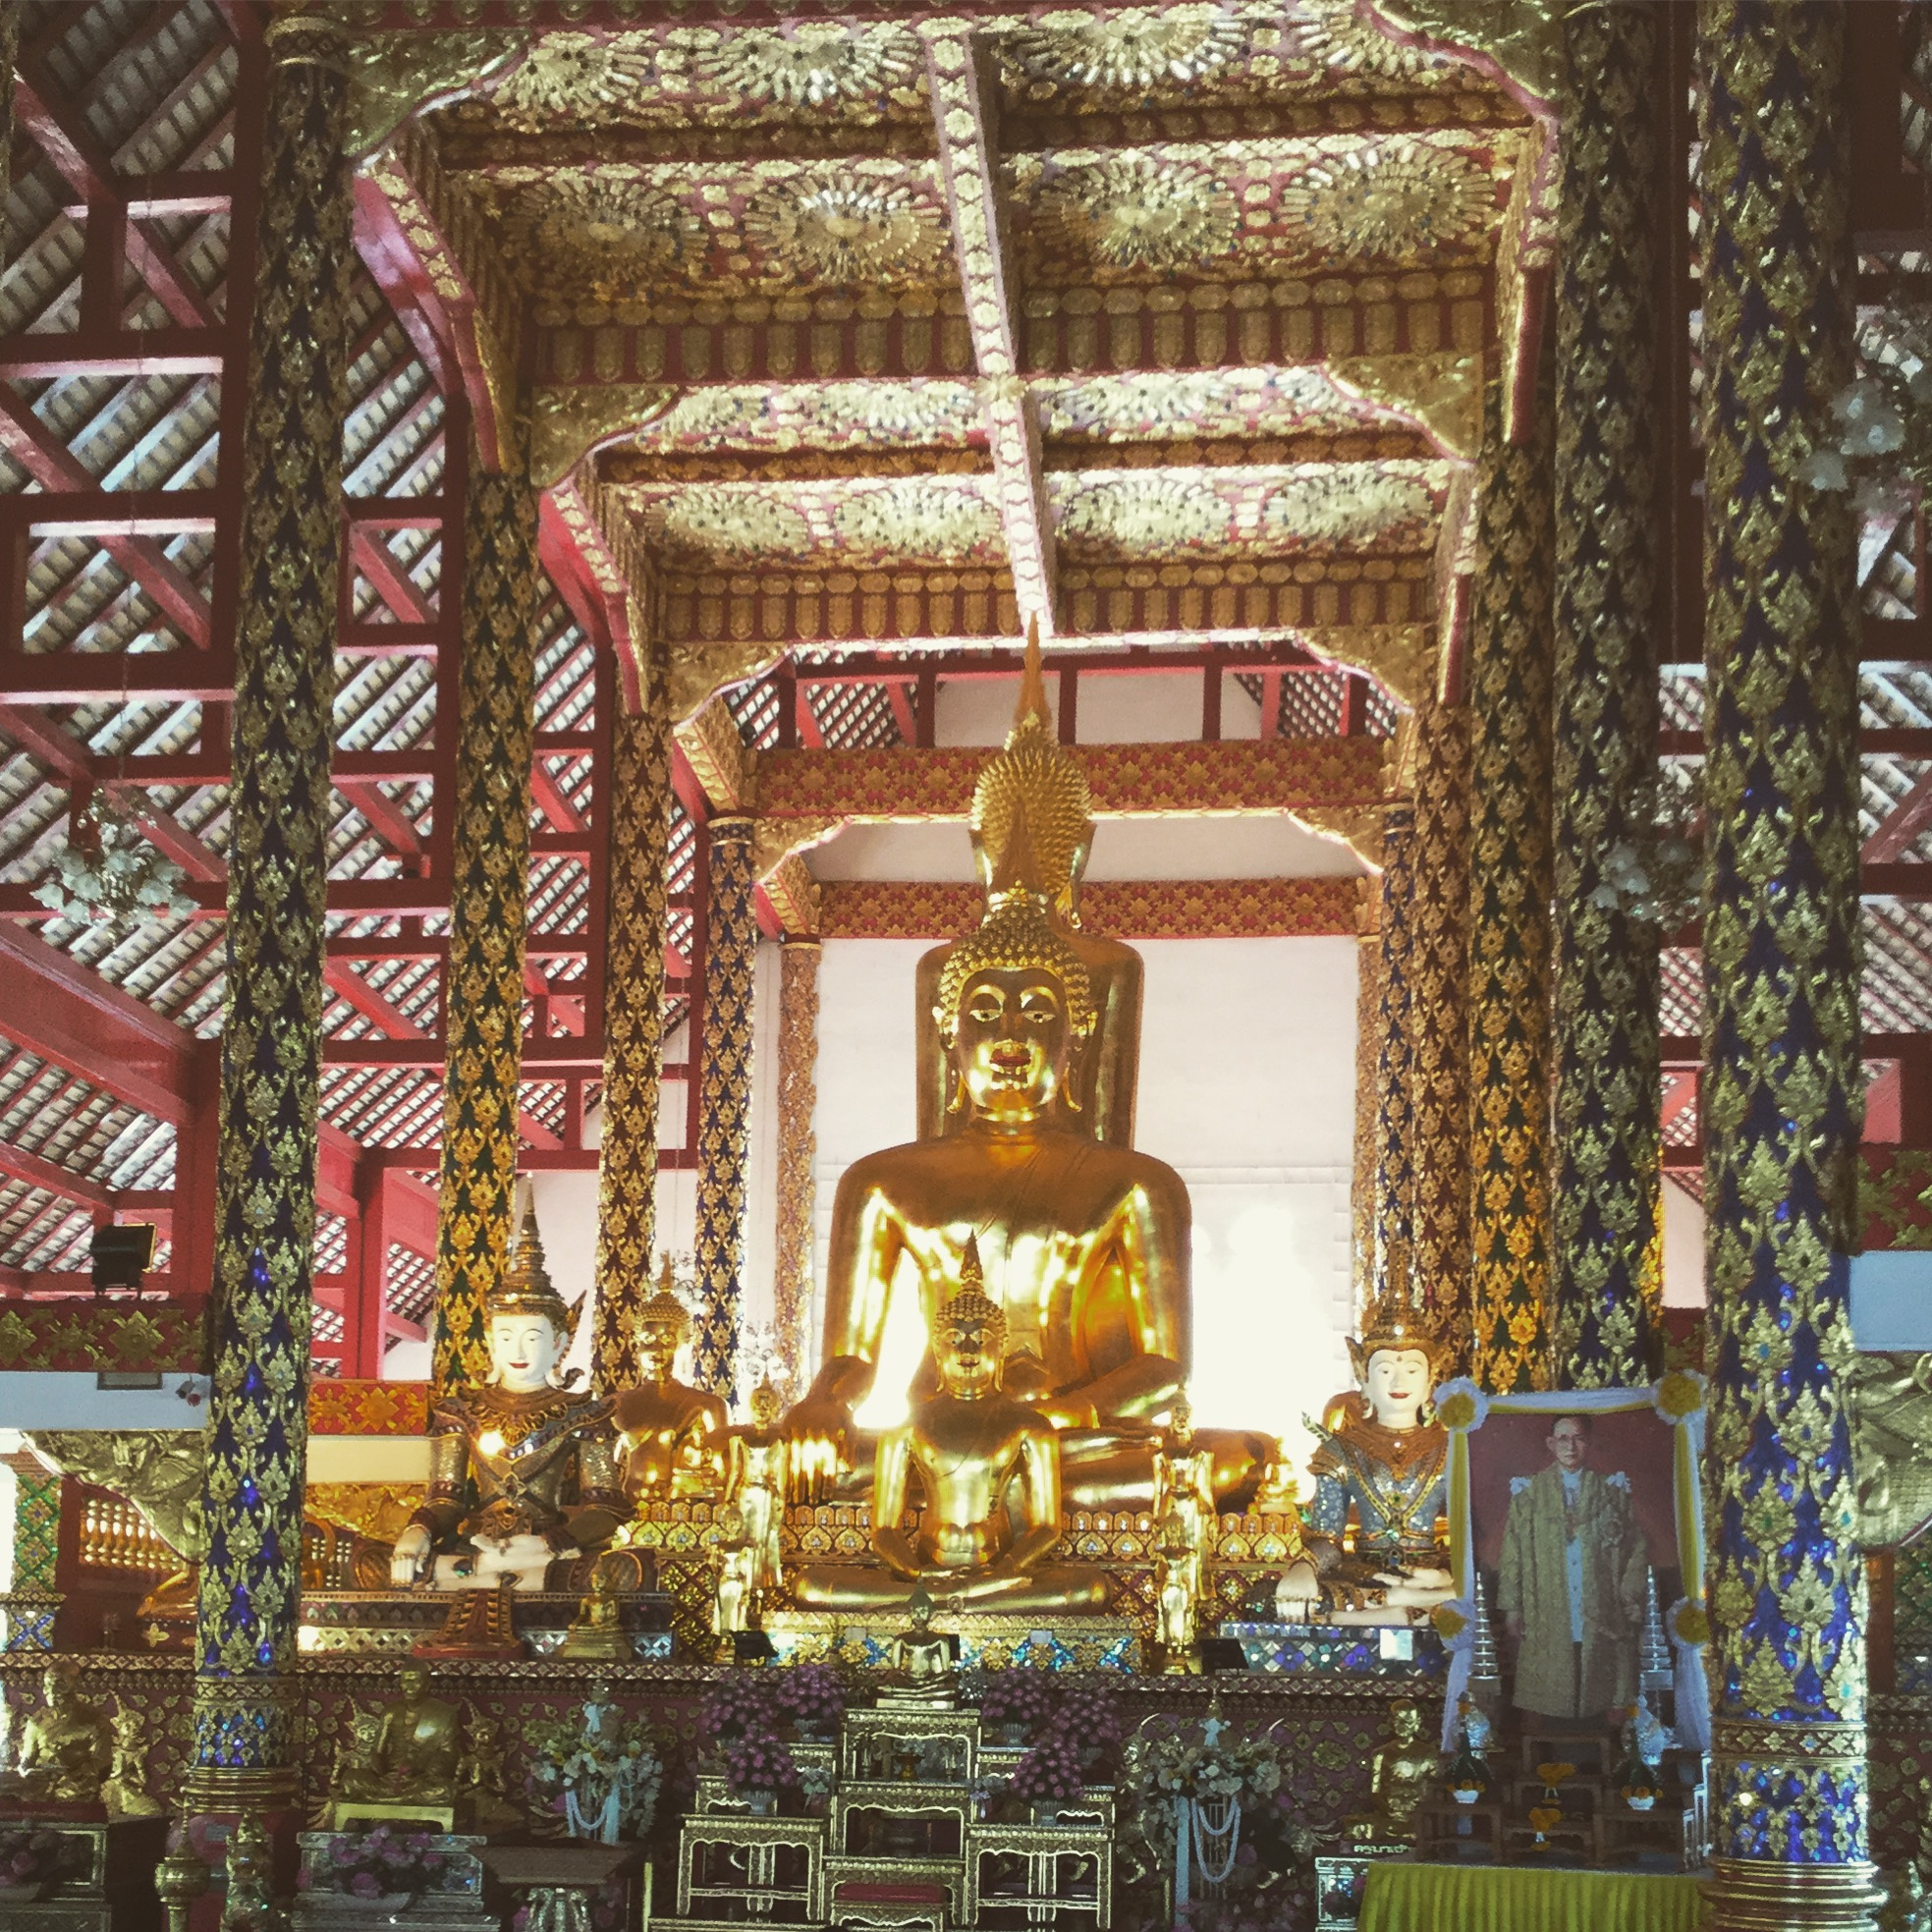 The temple at Doi Suthep